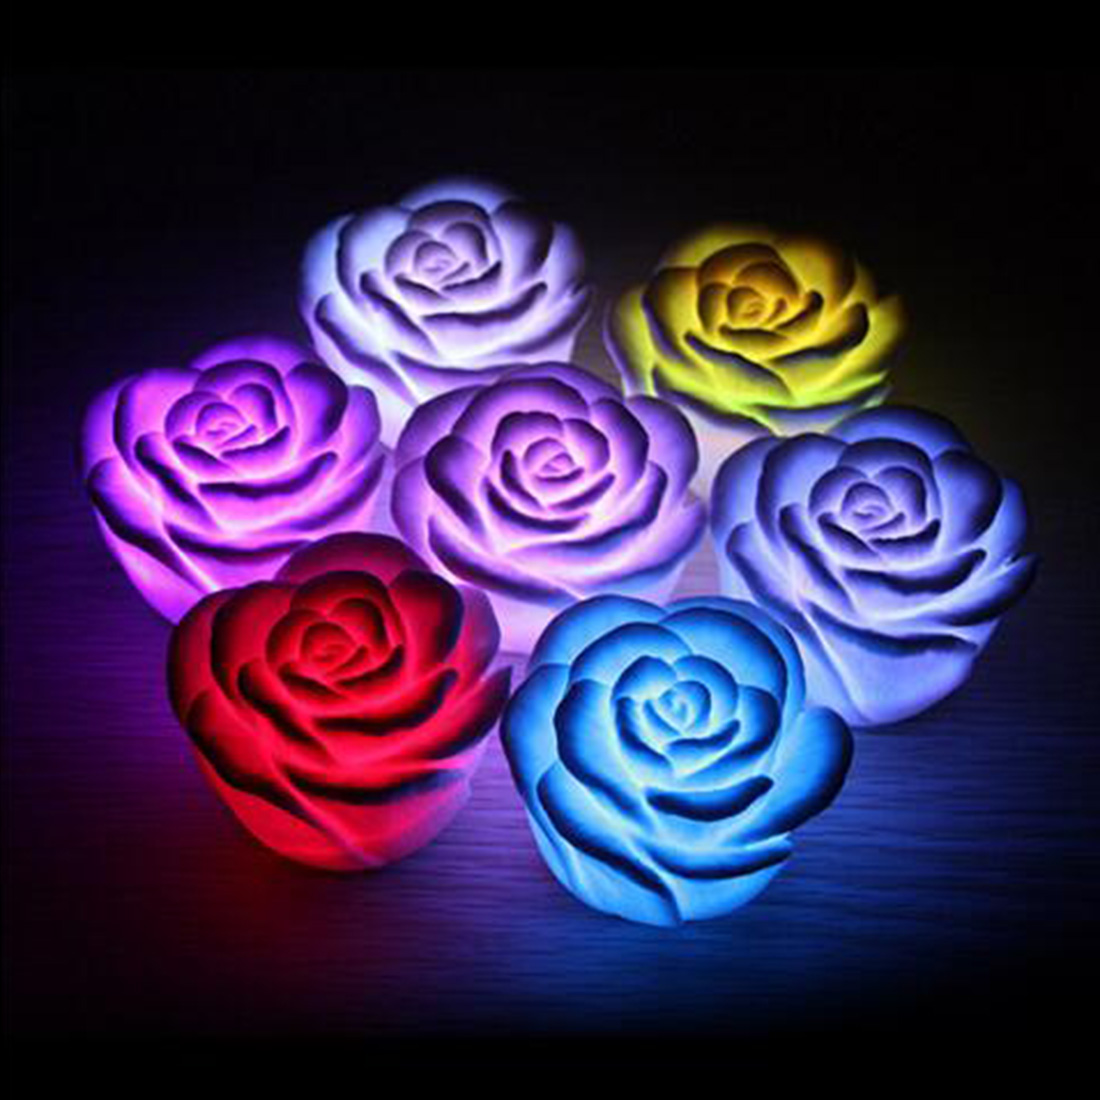 LED Night Lamp Romantic Rose Flower Night Light Color Changed Lamp LED Night Lights Interior Design